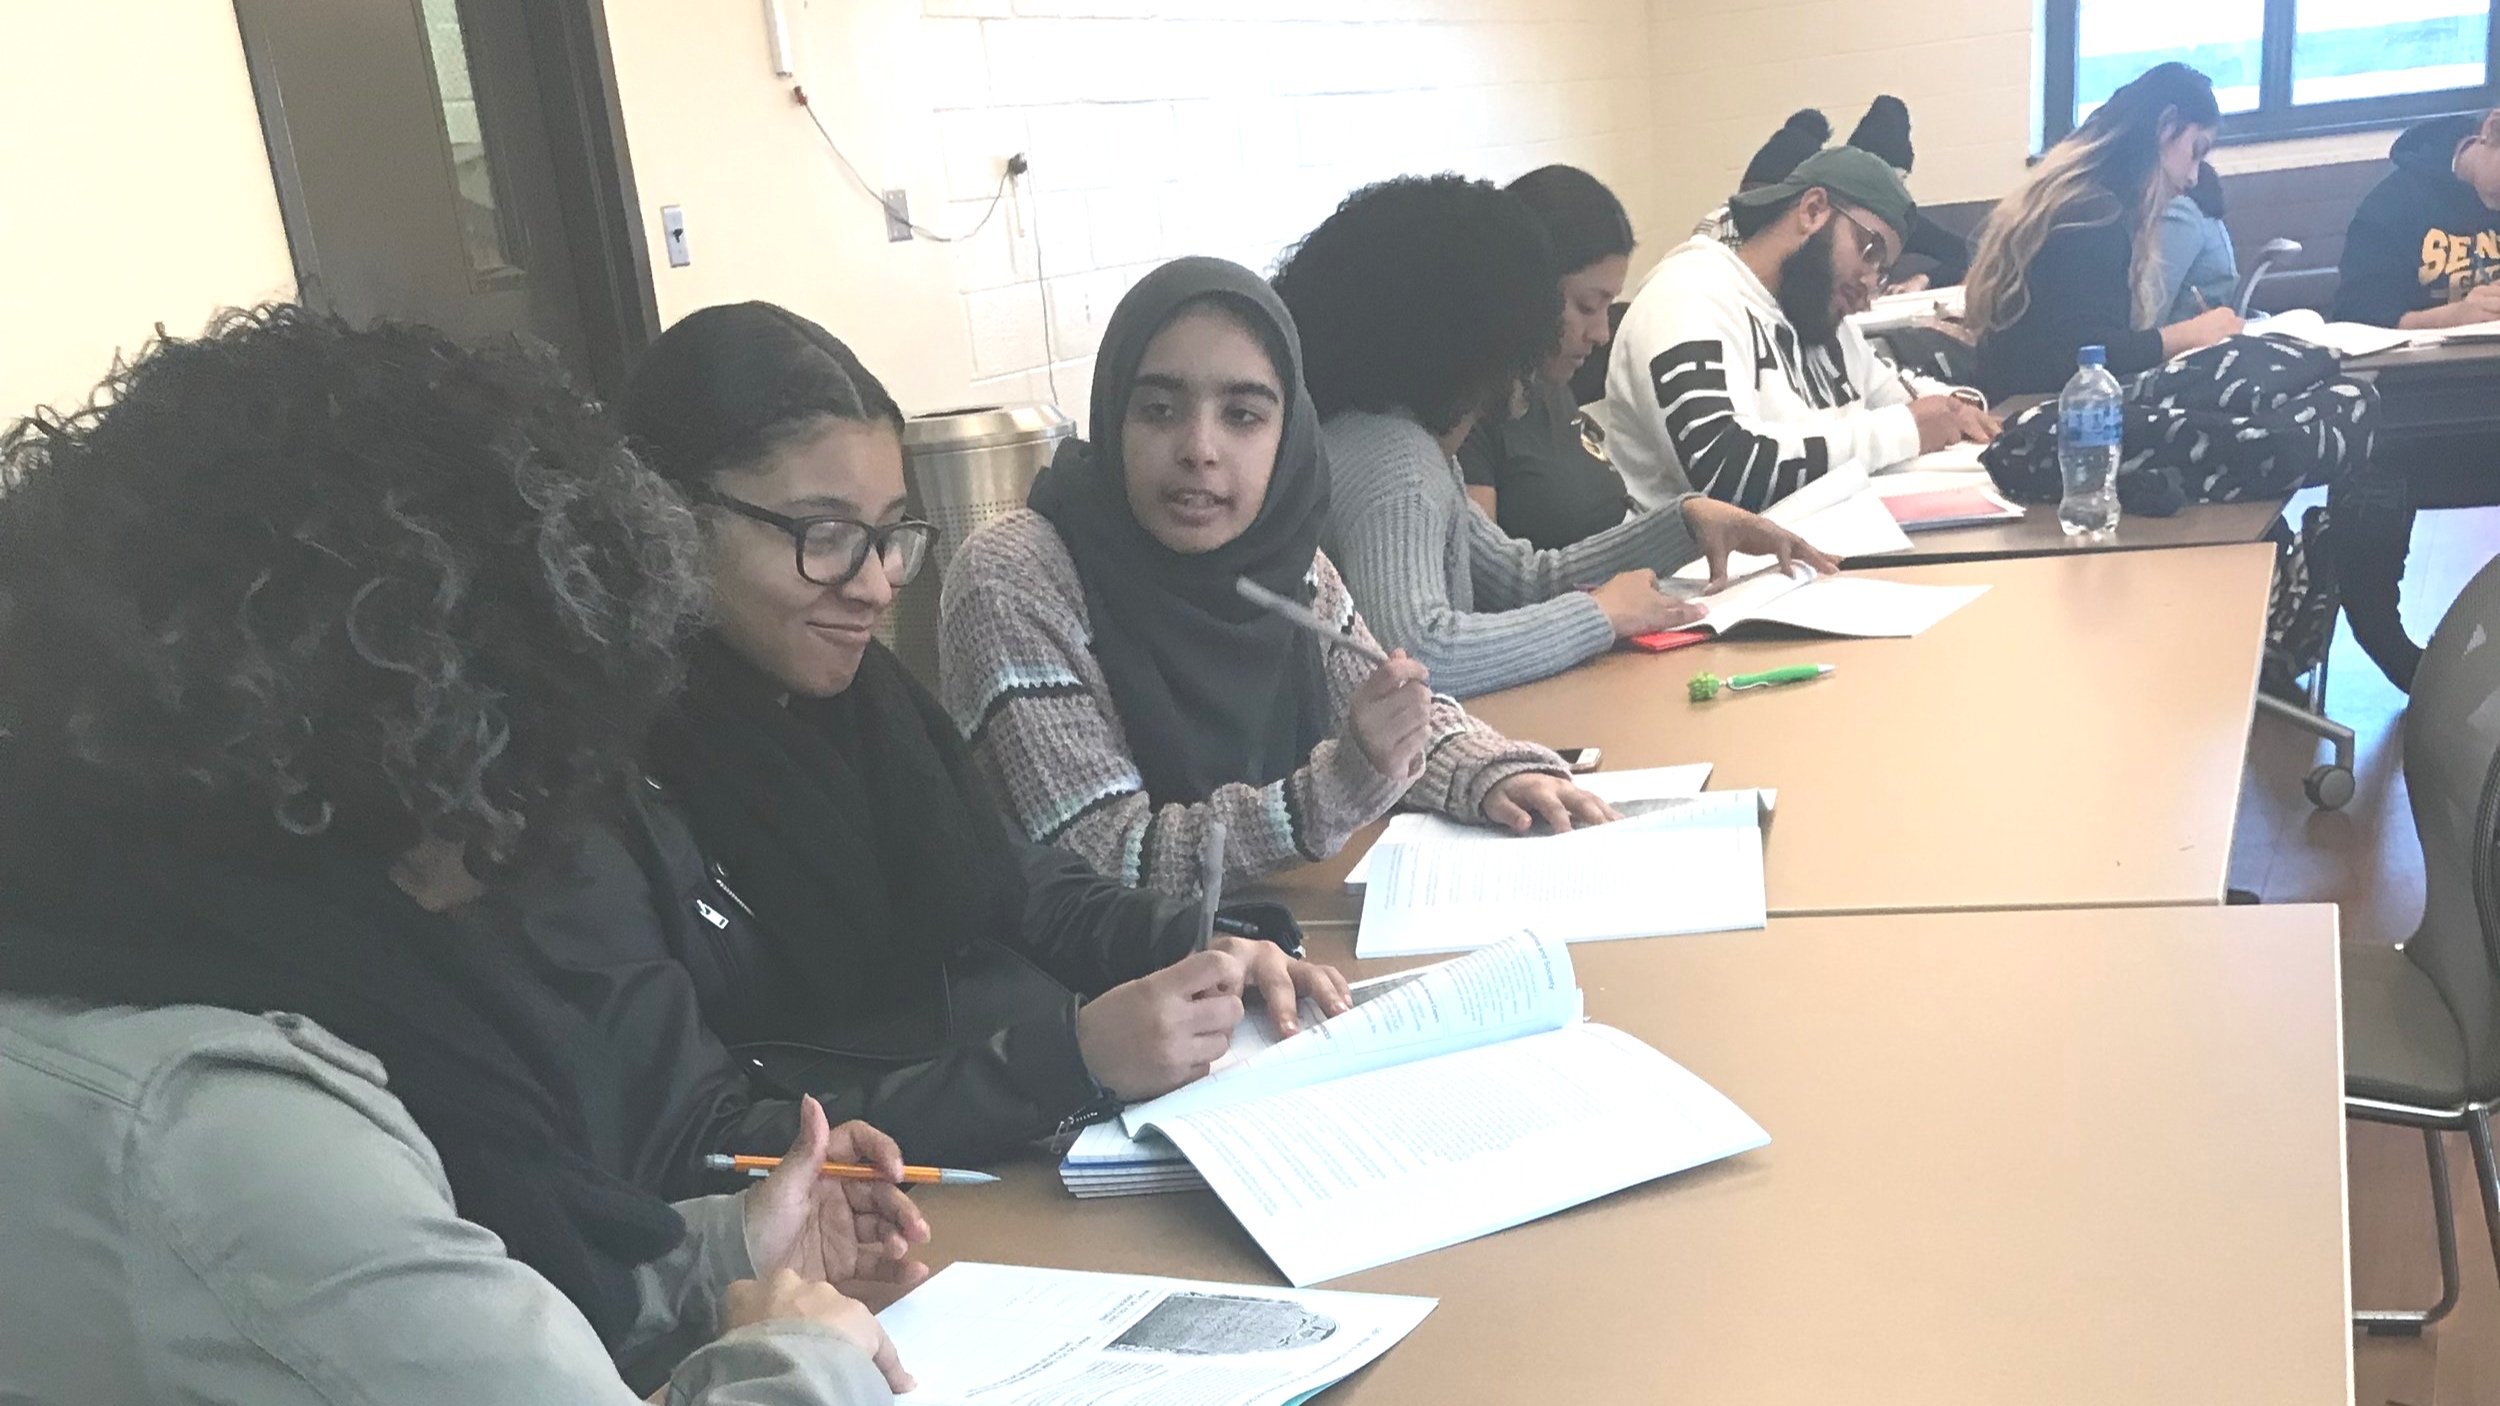 Students practice analysis and writing at Bronx Community College